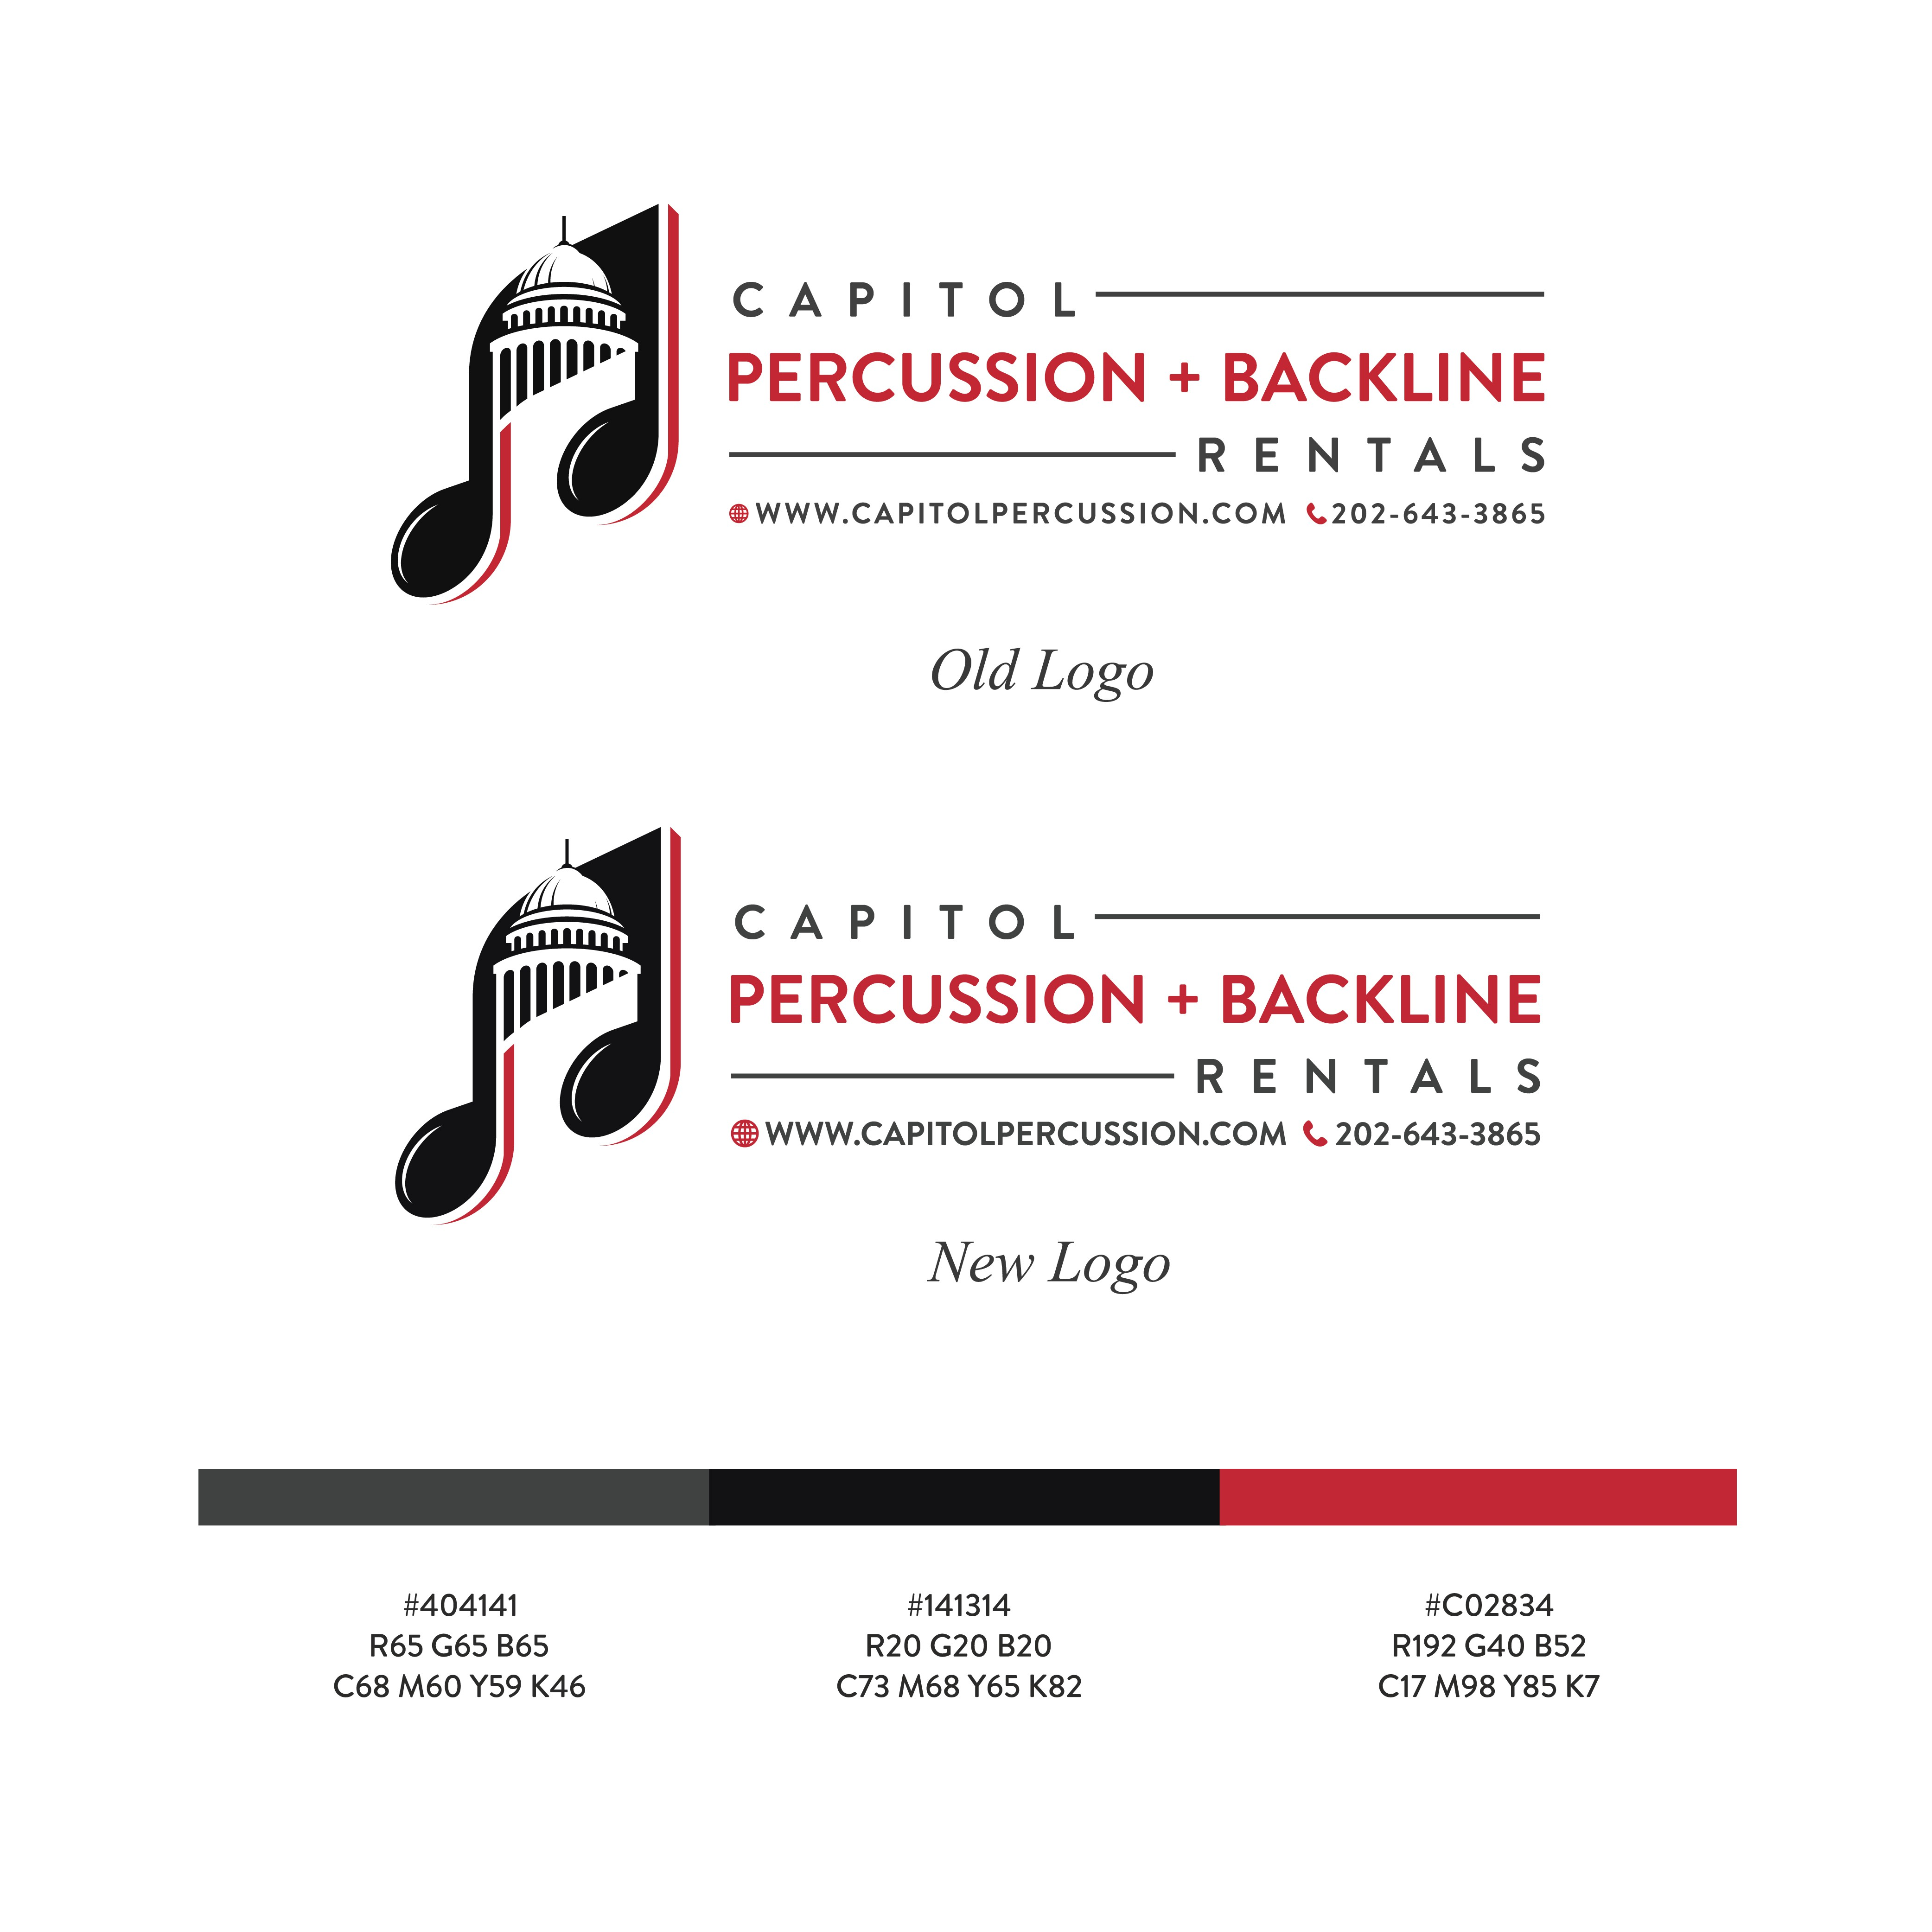 Create a logo that speaks for itself for Capitol Percussion